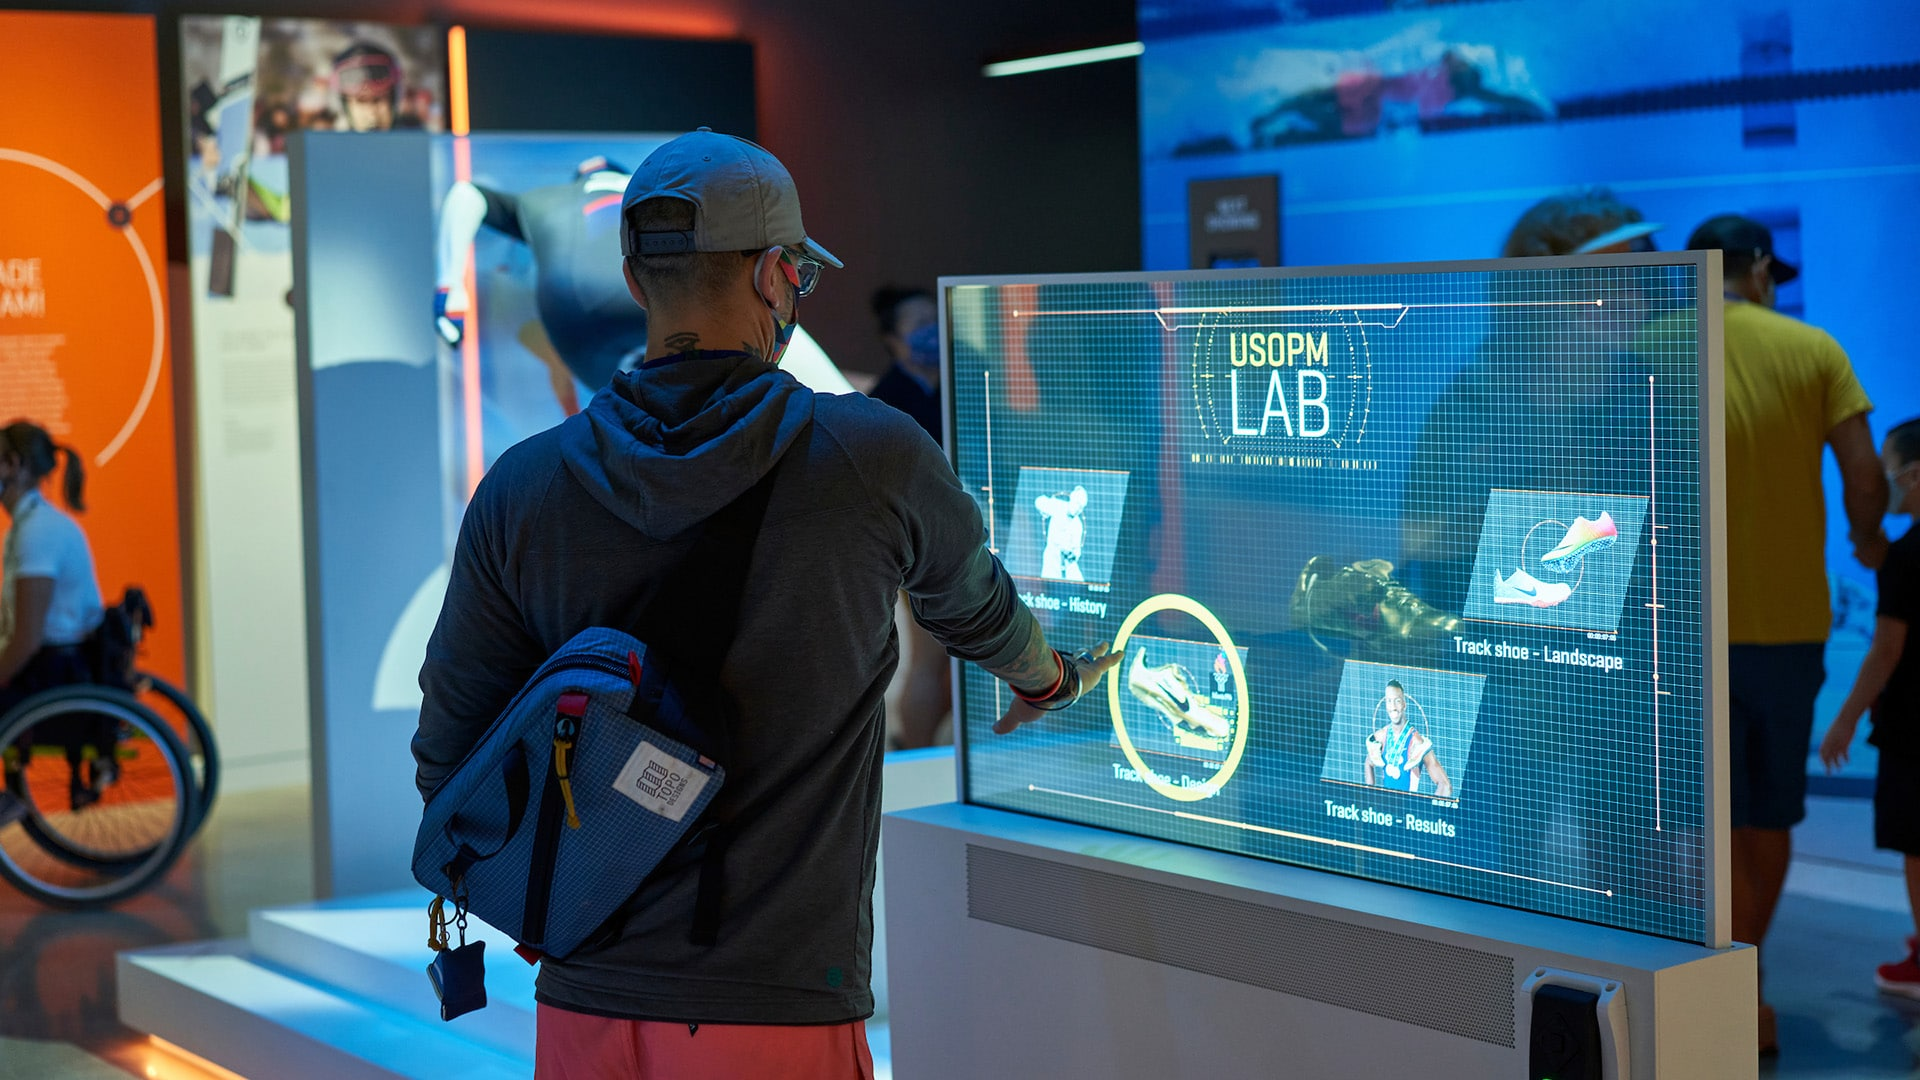 The Lab - Interactive Exhibits at the U.S. Olympic & Paralympic Museum